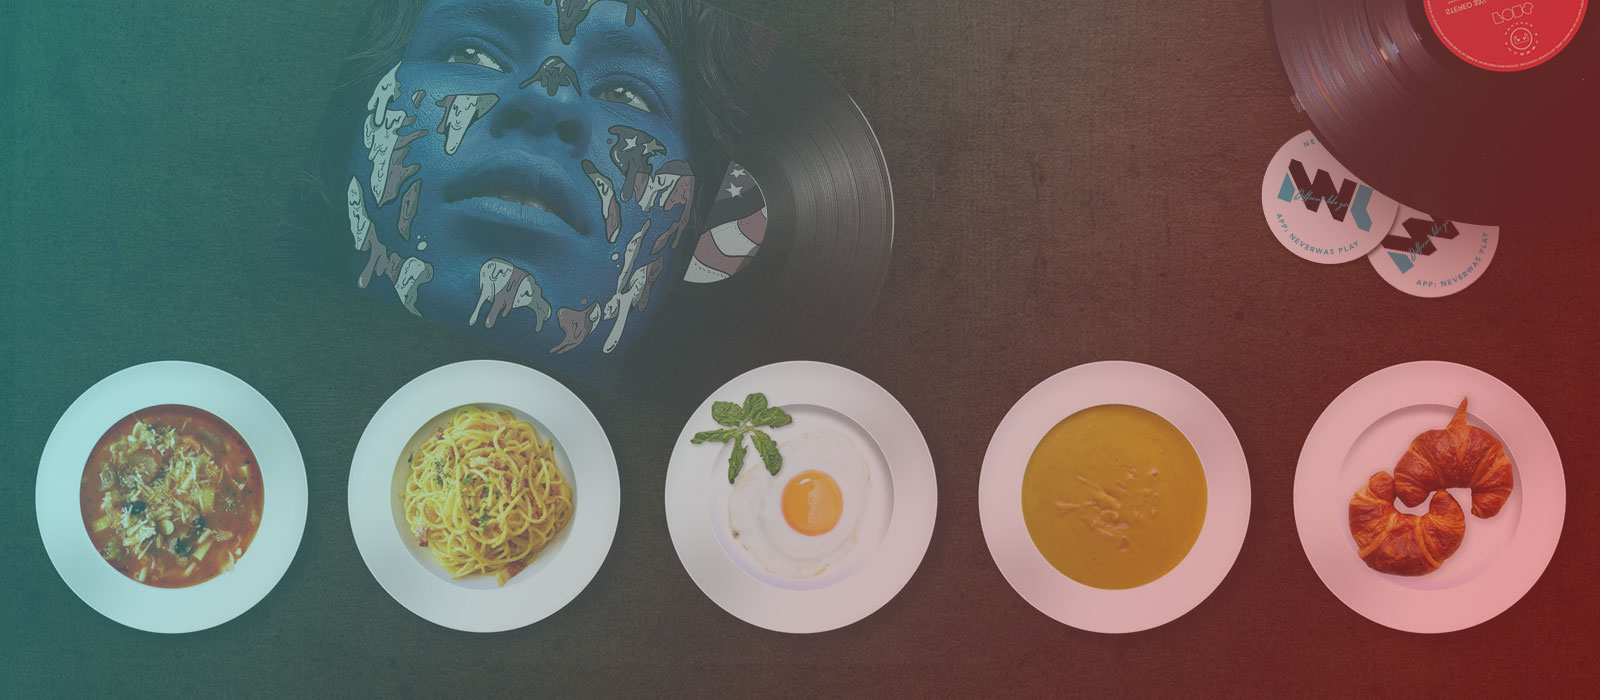 ALL YOU CAN BEAT è la PLAYLIST per il PRANZO di NEVERWAS RADIO, la WEB RADIO INDIPENDENTE di VARESE, dedicato alle NOVITà, al MAINSTREAM e alla musica ALTERNATIVA INDIPENDENTE